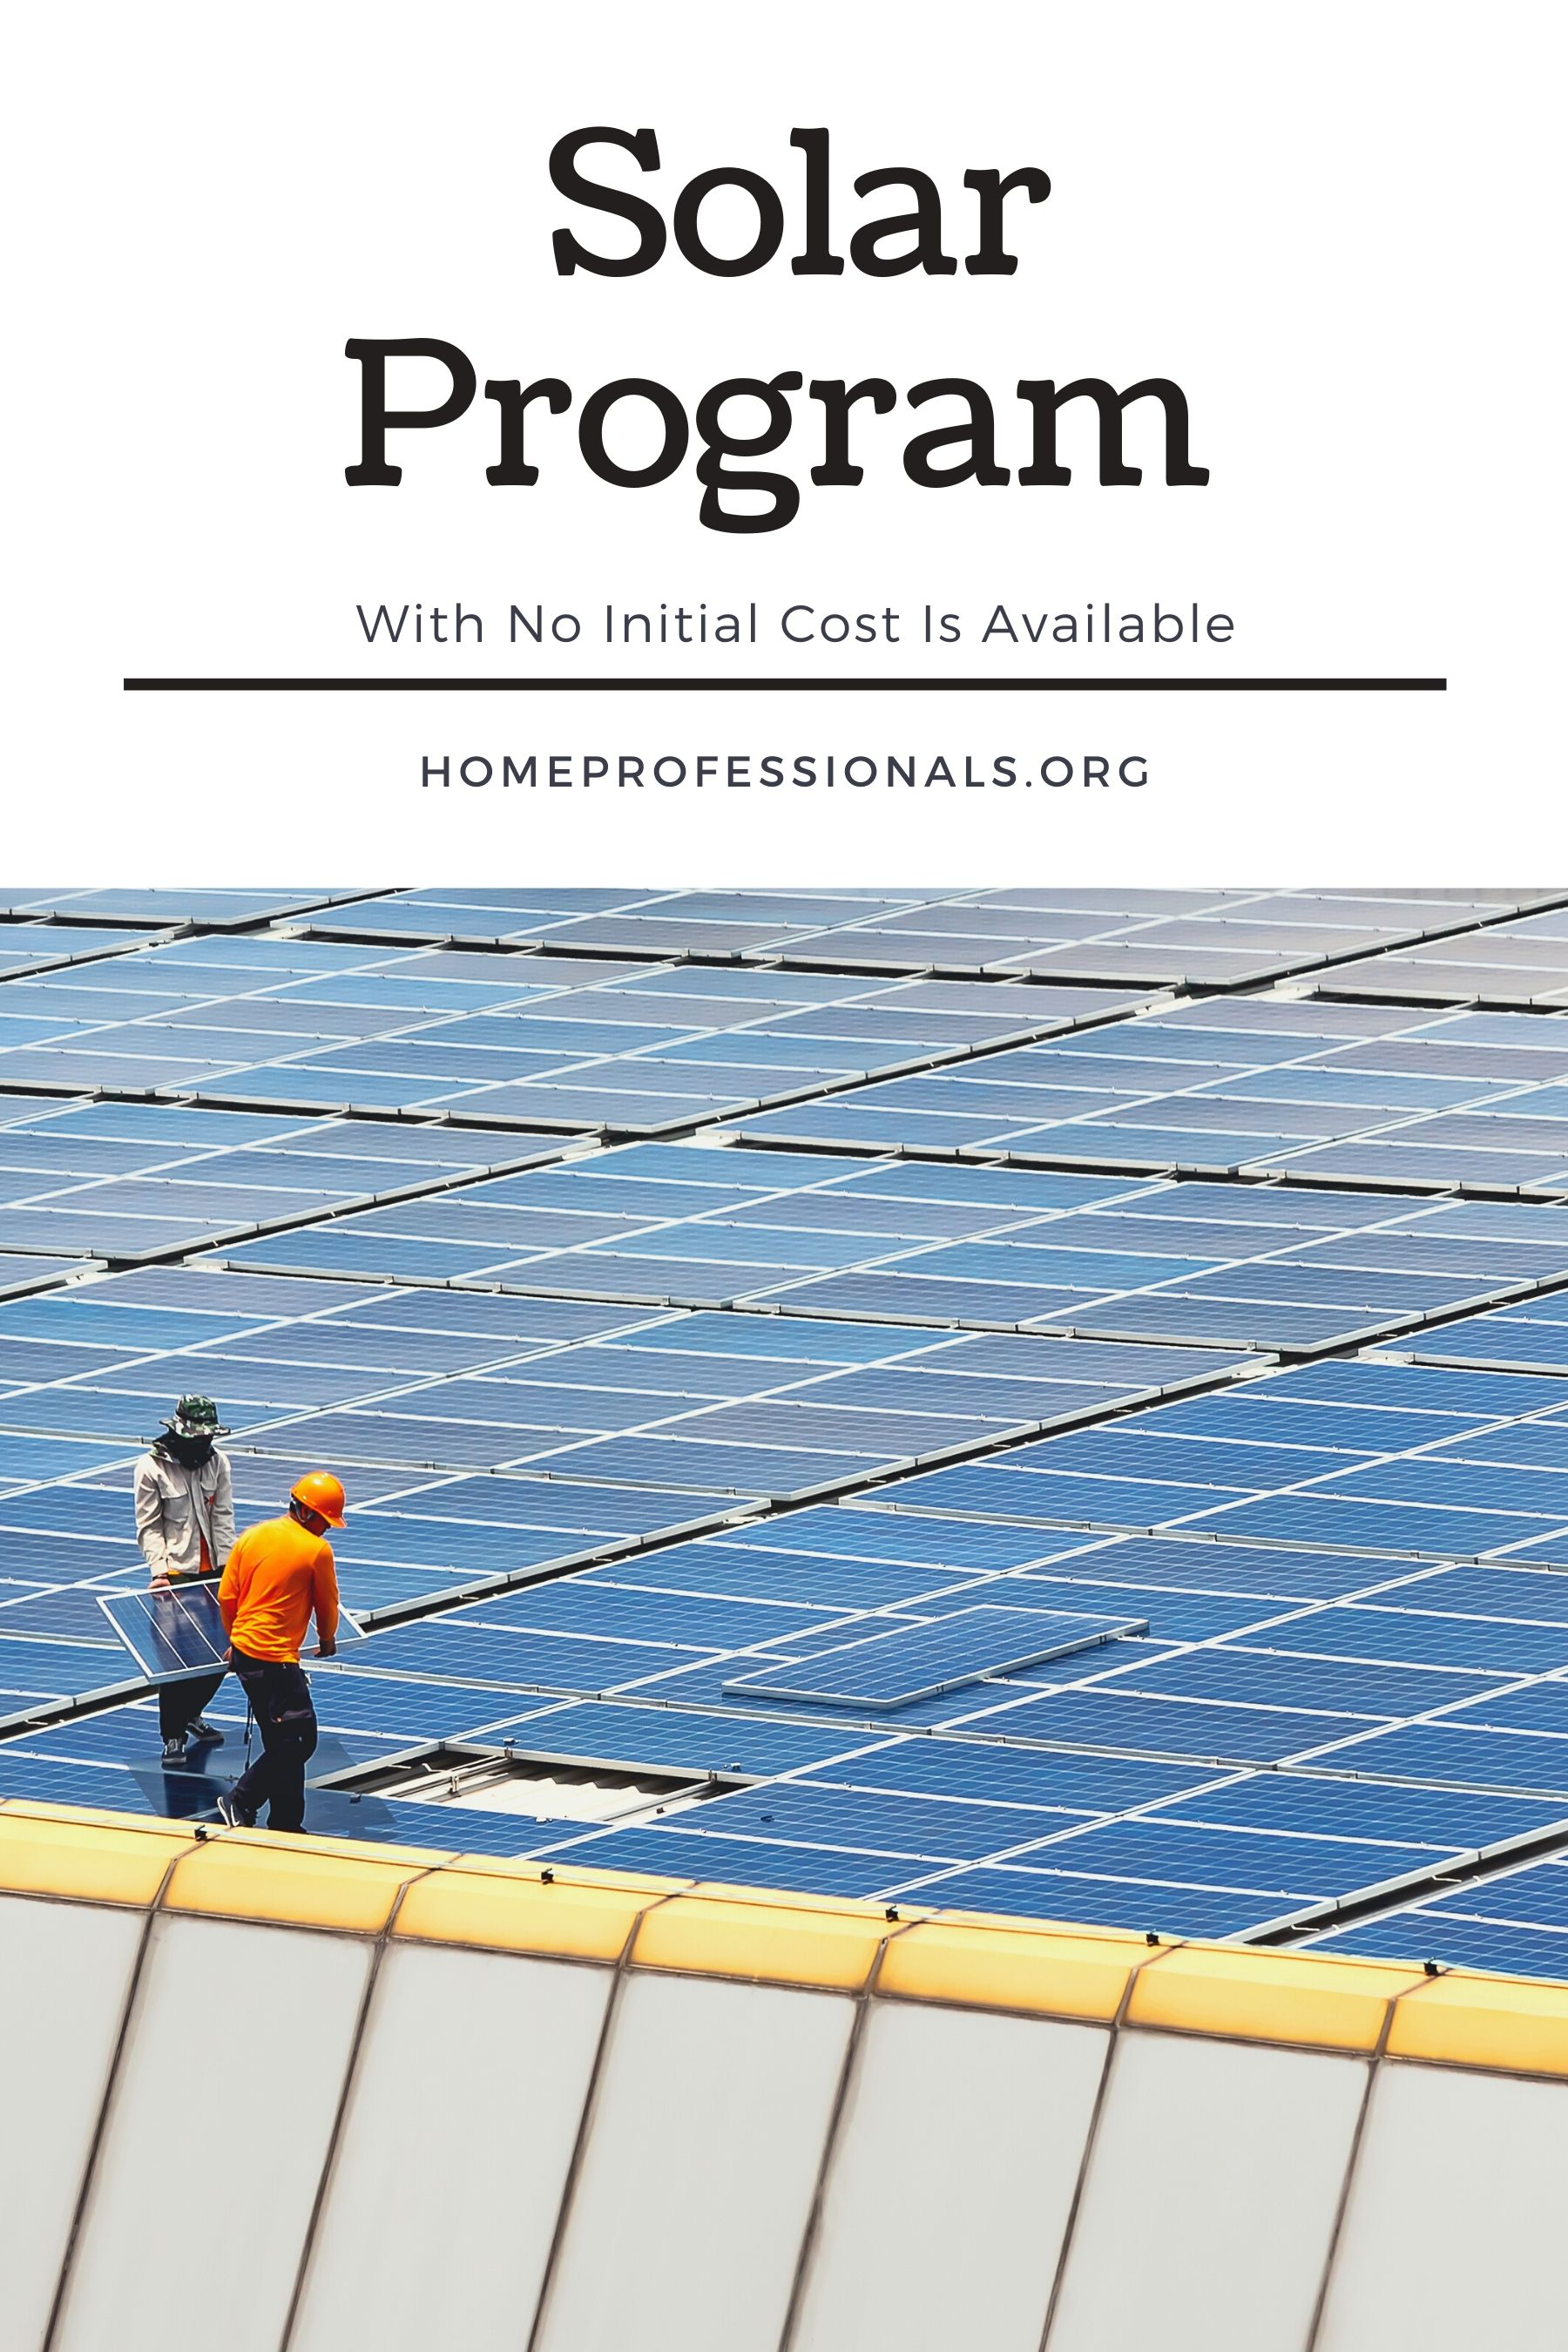 Through Government Rebates And Tax Incentives This Solar Program Is Making Solar Energy More Accessible And Affordable F In 2020 Solar Solar Energy Solar Installation